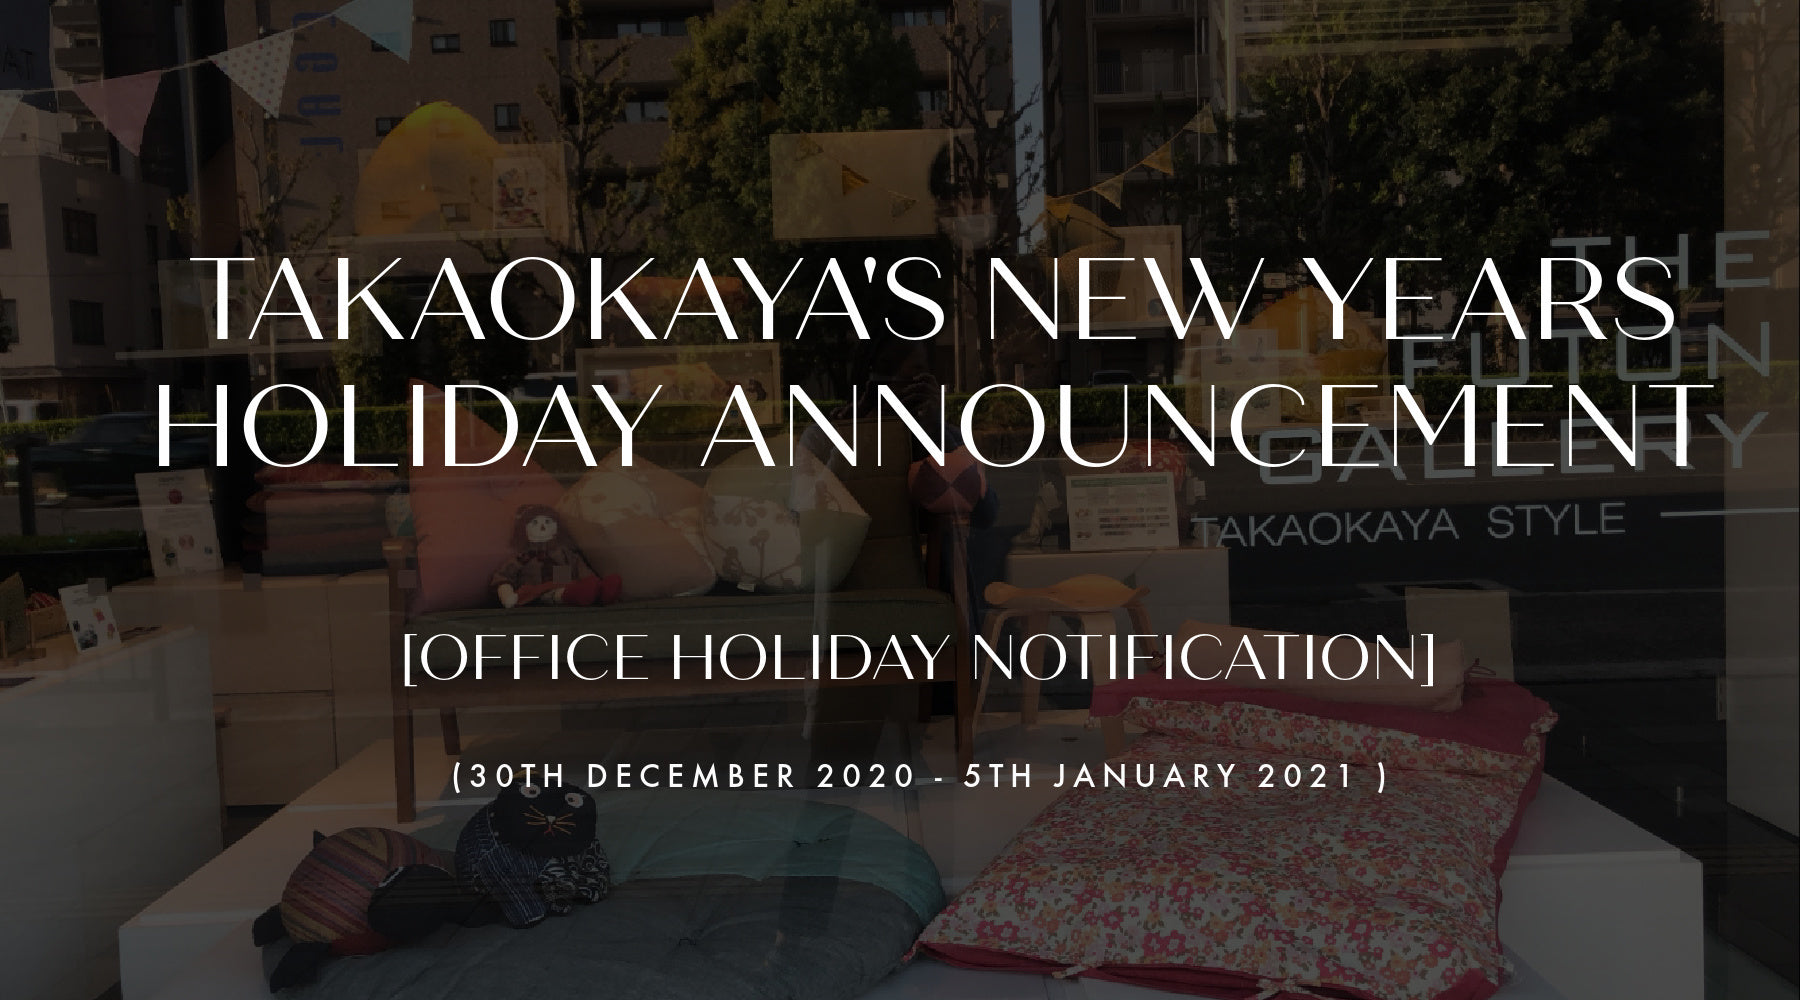 Takaokaya's New Years Holiday Annoucement